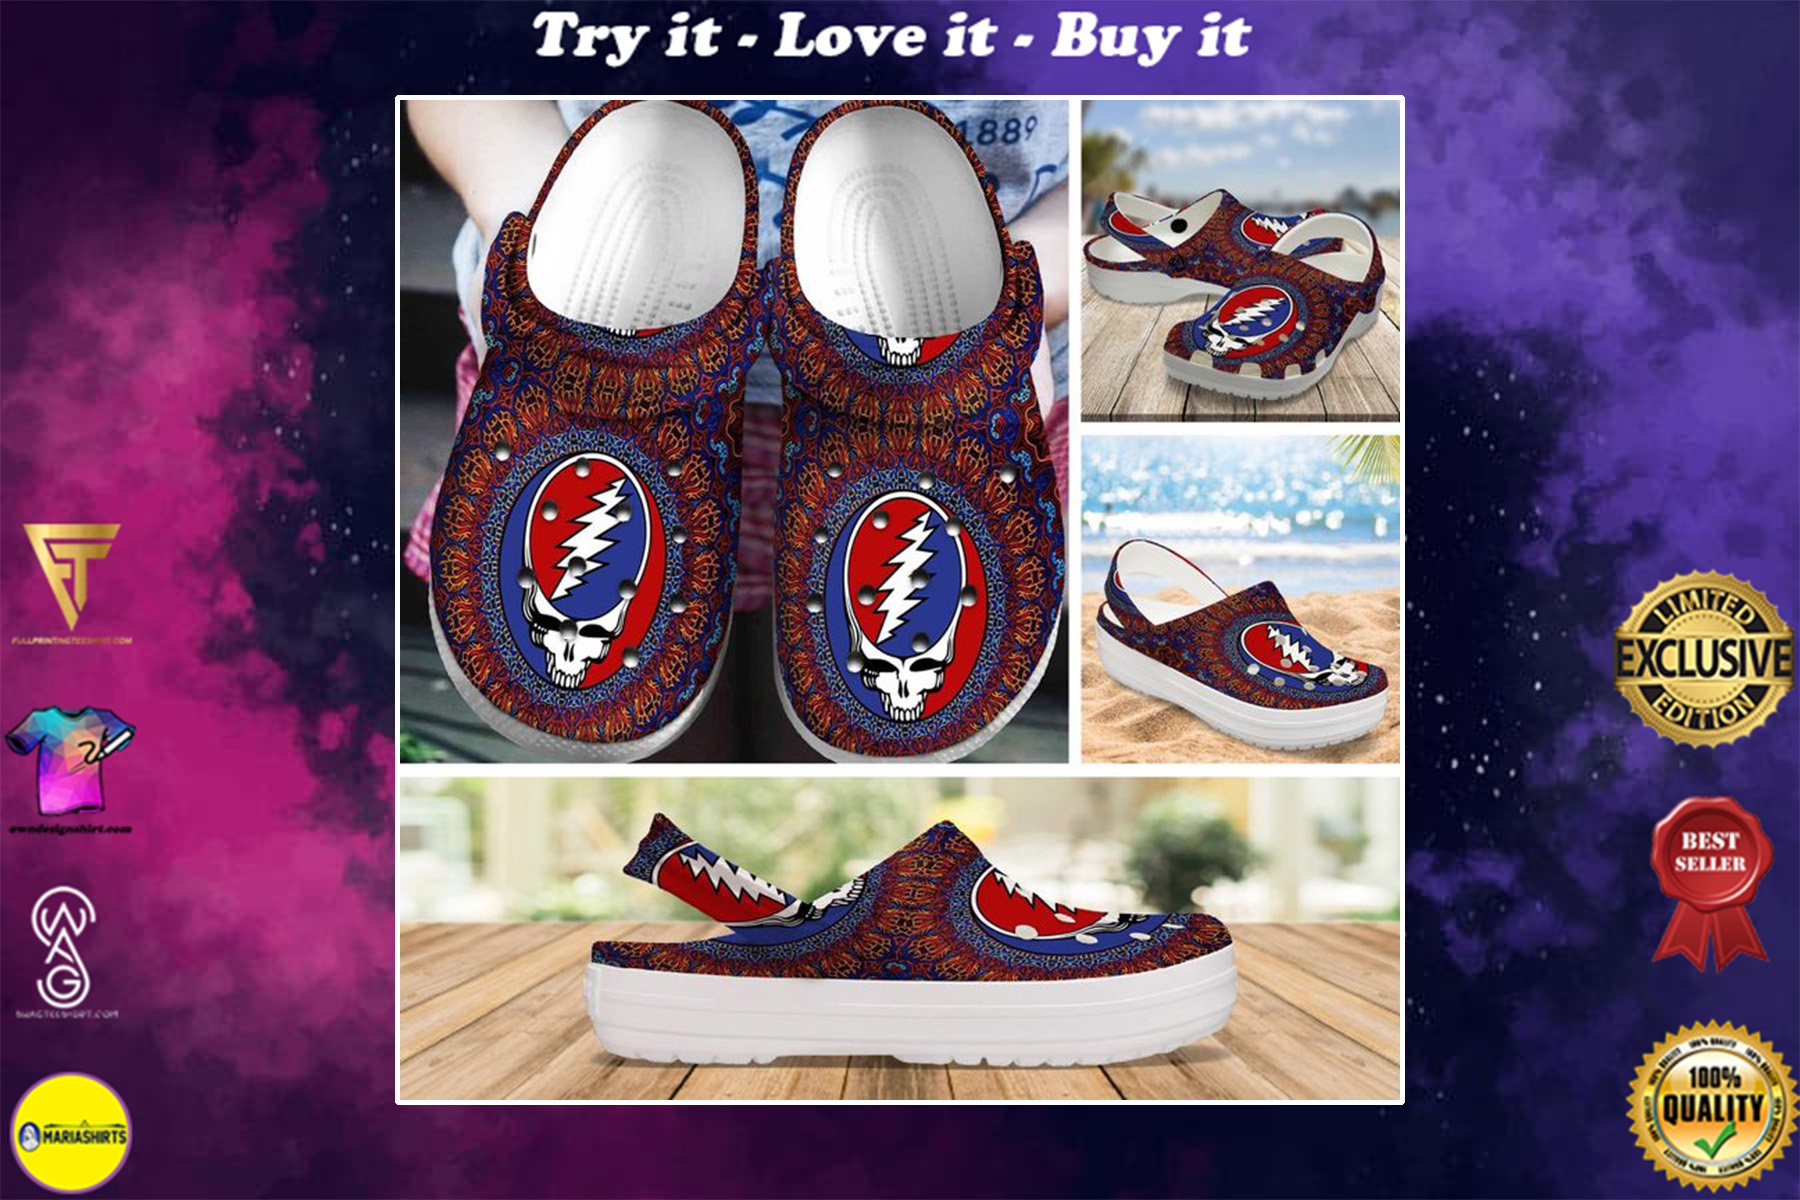 the grateful dead rock band crocs - Copy